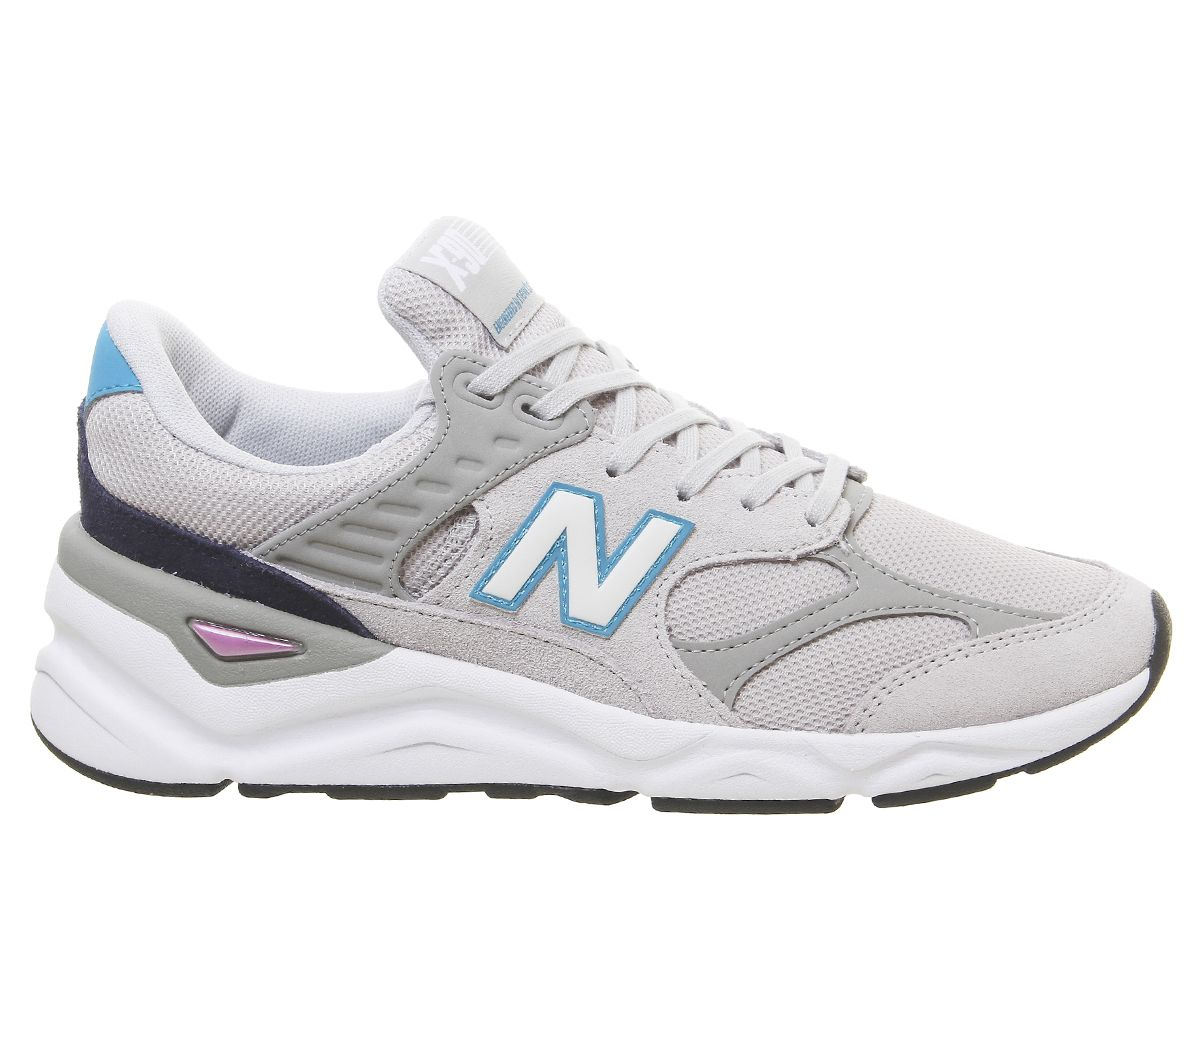 detailed pictures 50dd6 59b29 New Balance X90 Trainers Rain Cloud Deep Ozone Blue - His trainers